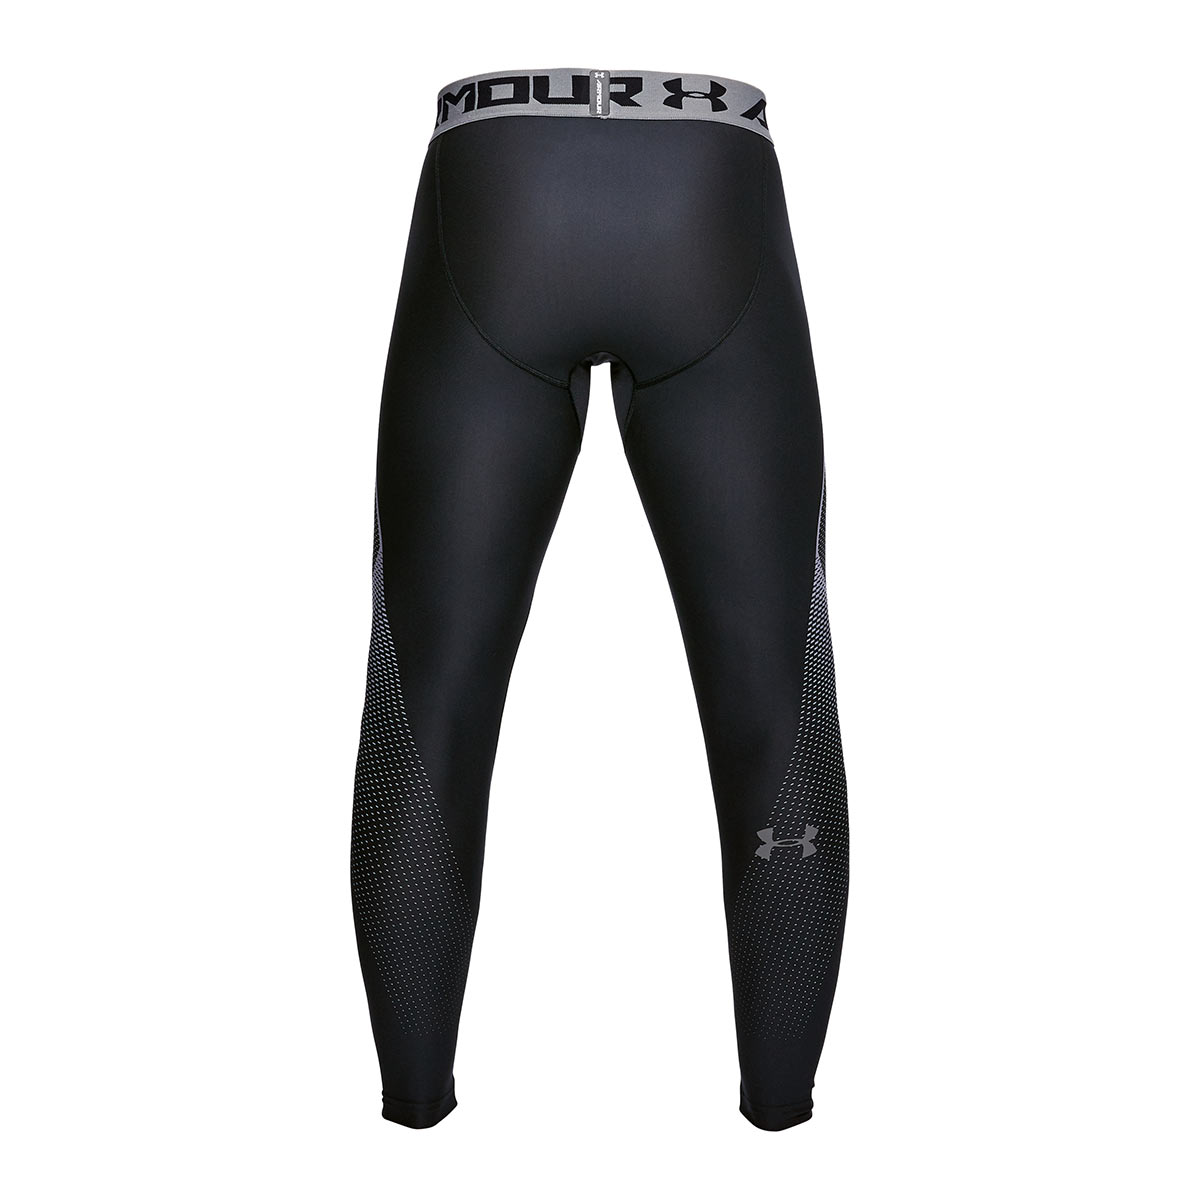 44d8331012 ... Under Armour Heatgear Graphic Compression Leggings Black - Back ...